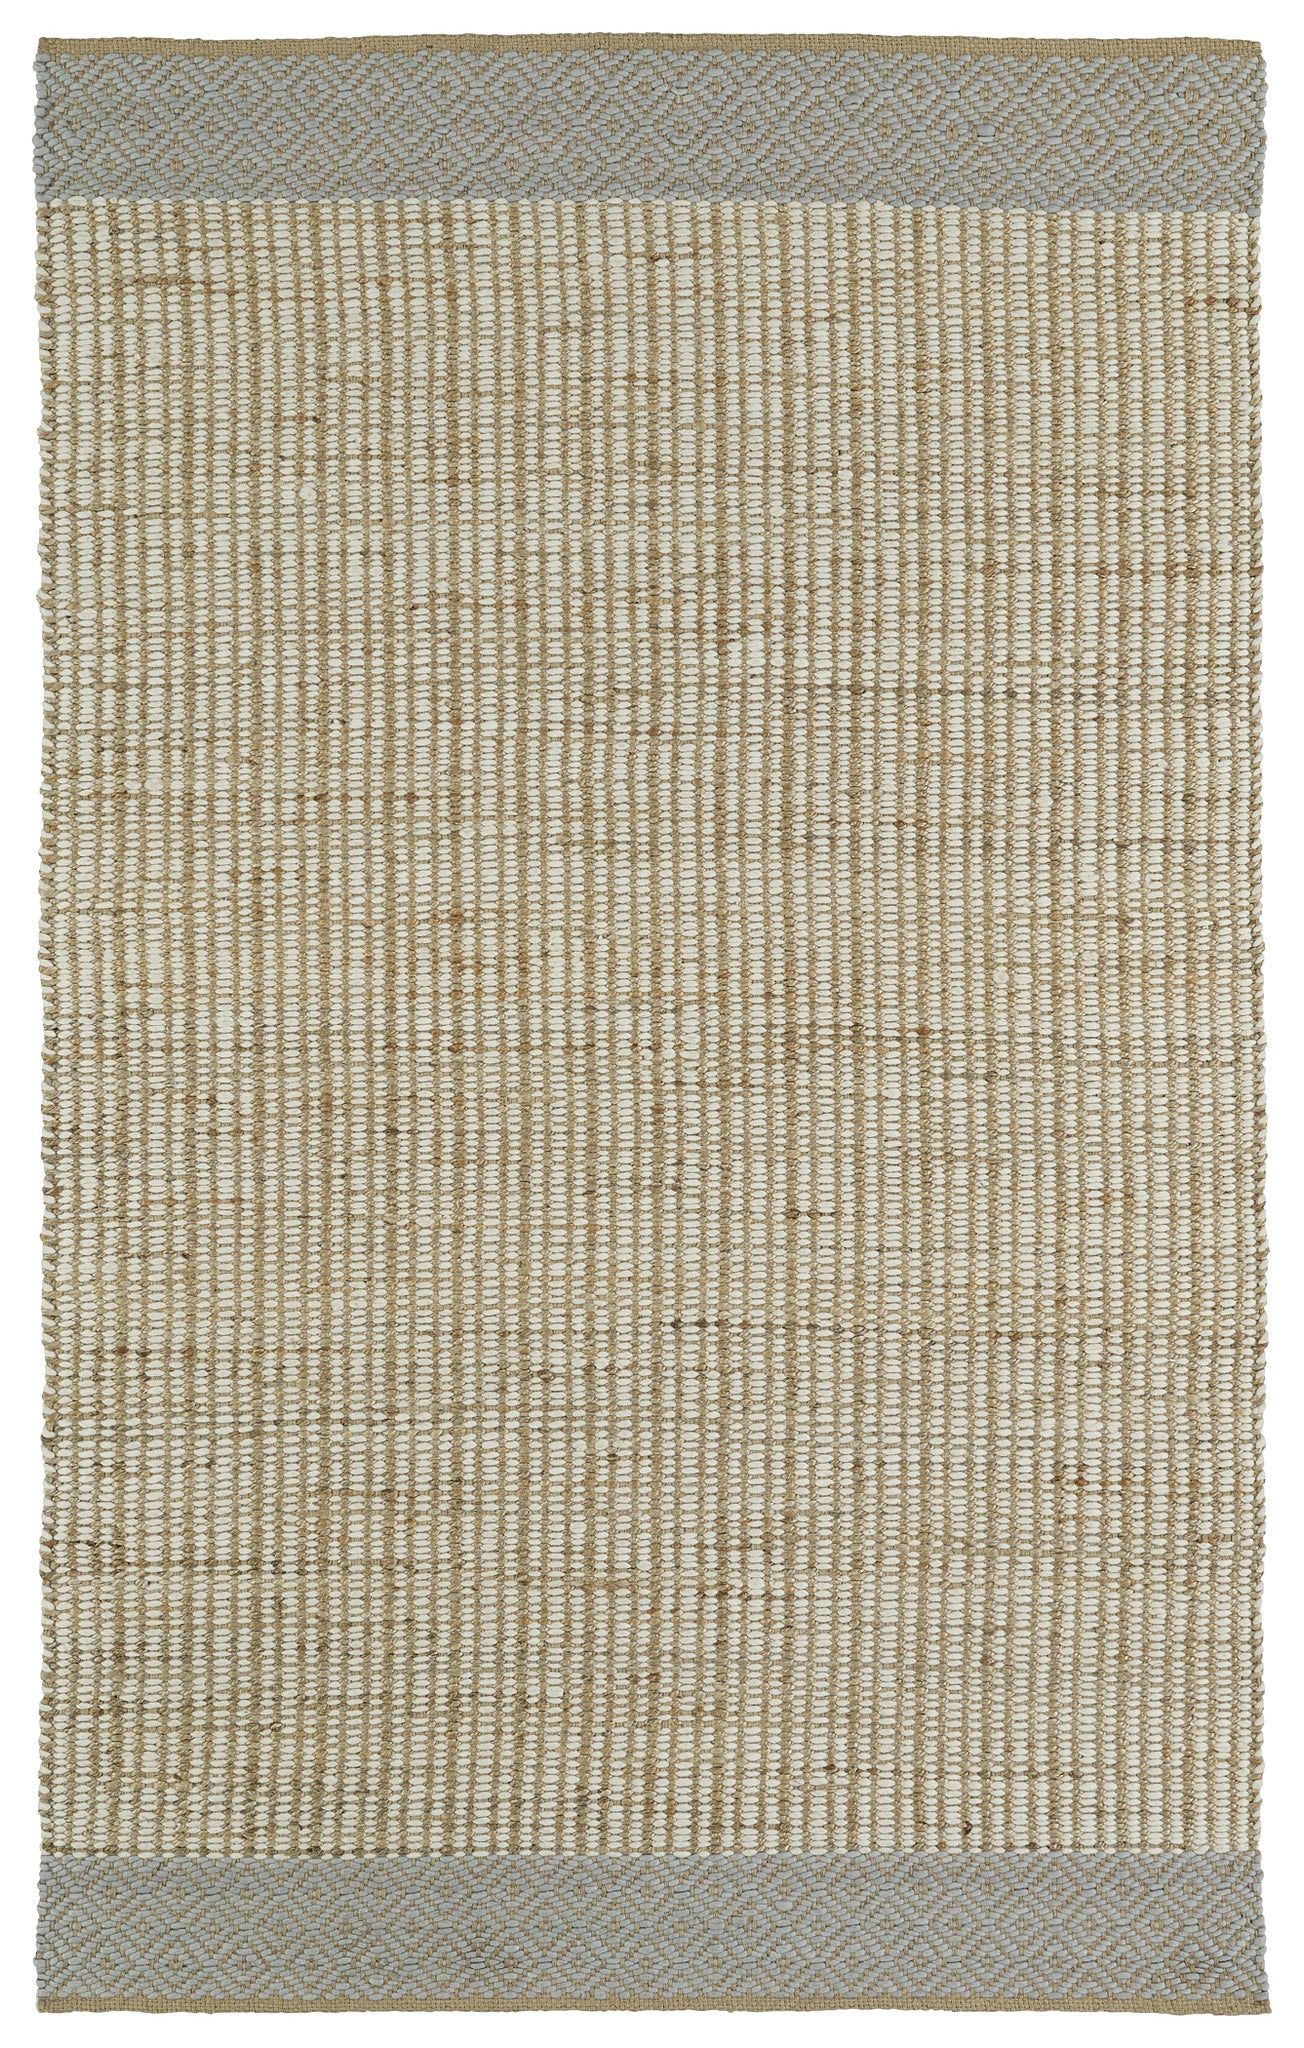 Kaleen Colinas COL02-01 Ivory Area Rug main image